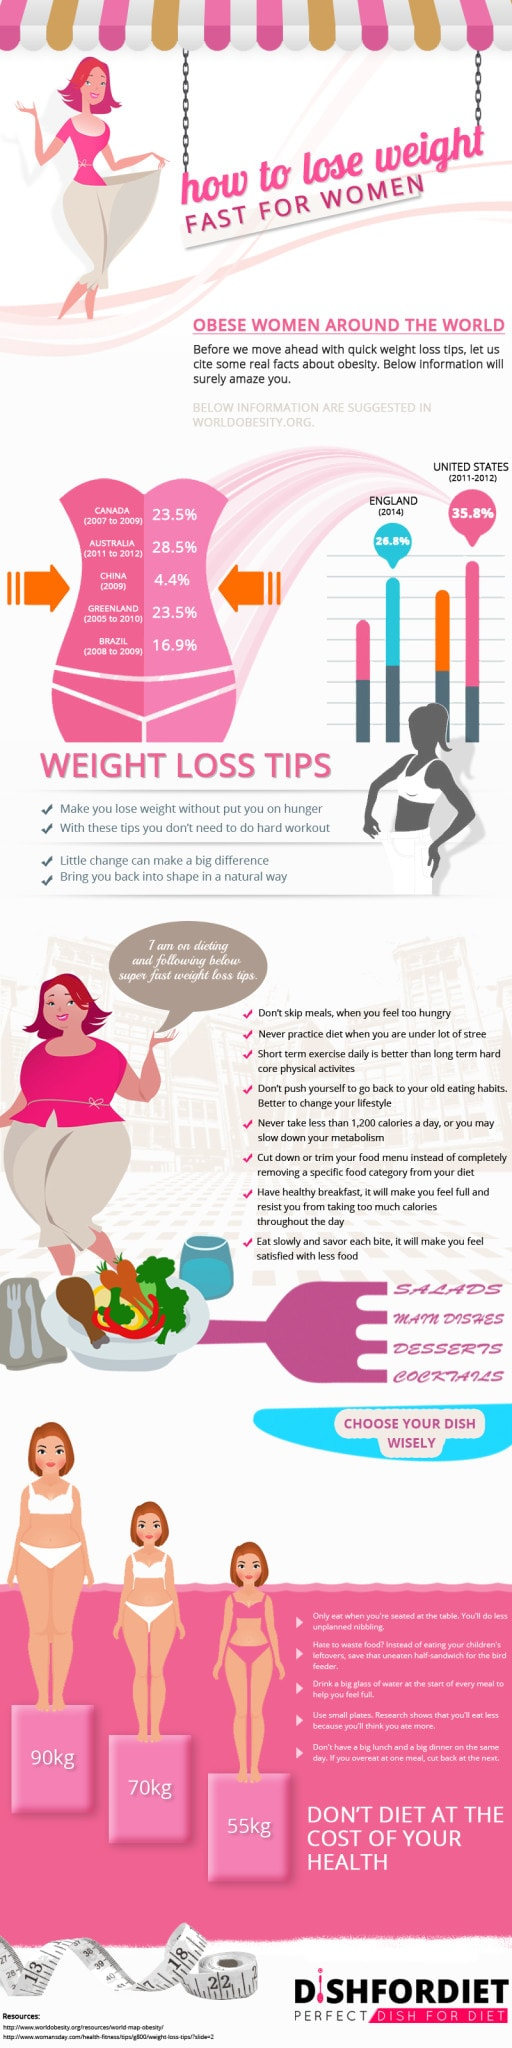 Extreme Weight Loss Tips for Women - Dish for Diet